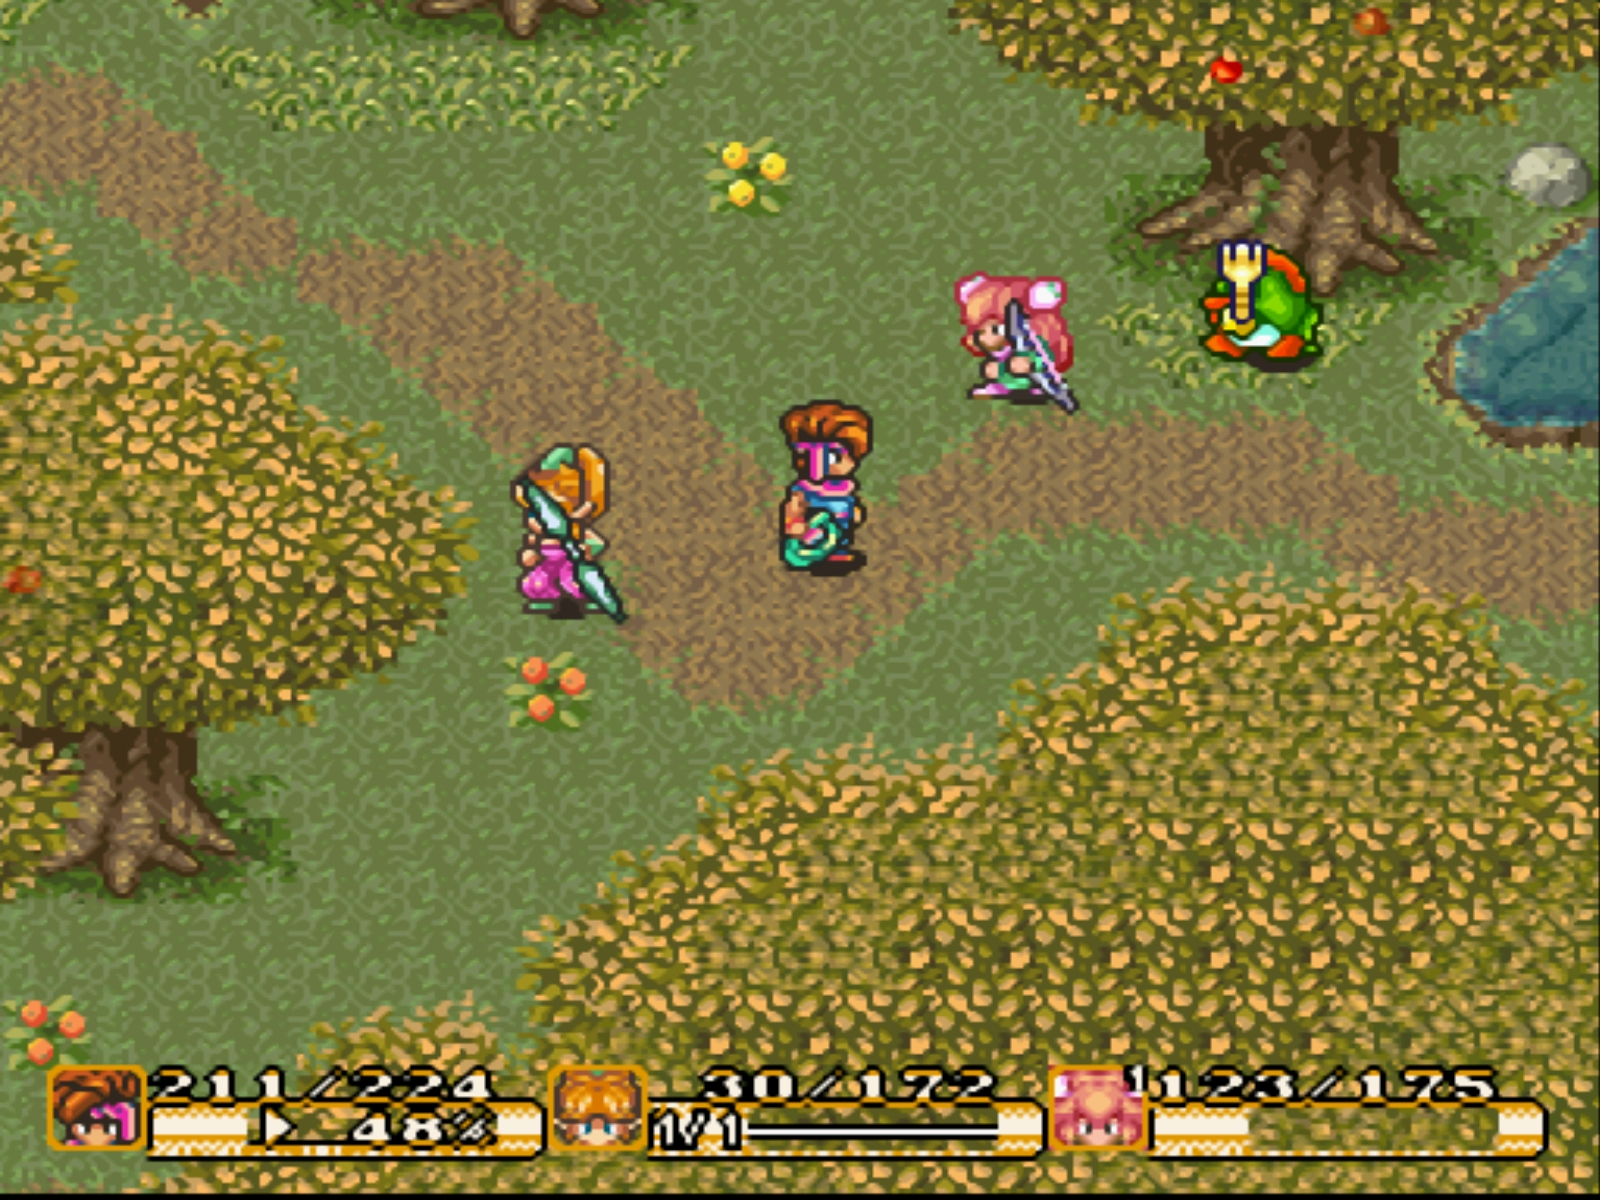 Secret of mana controls